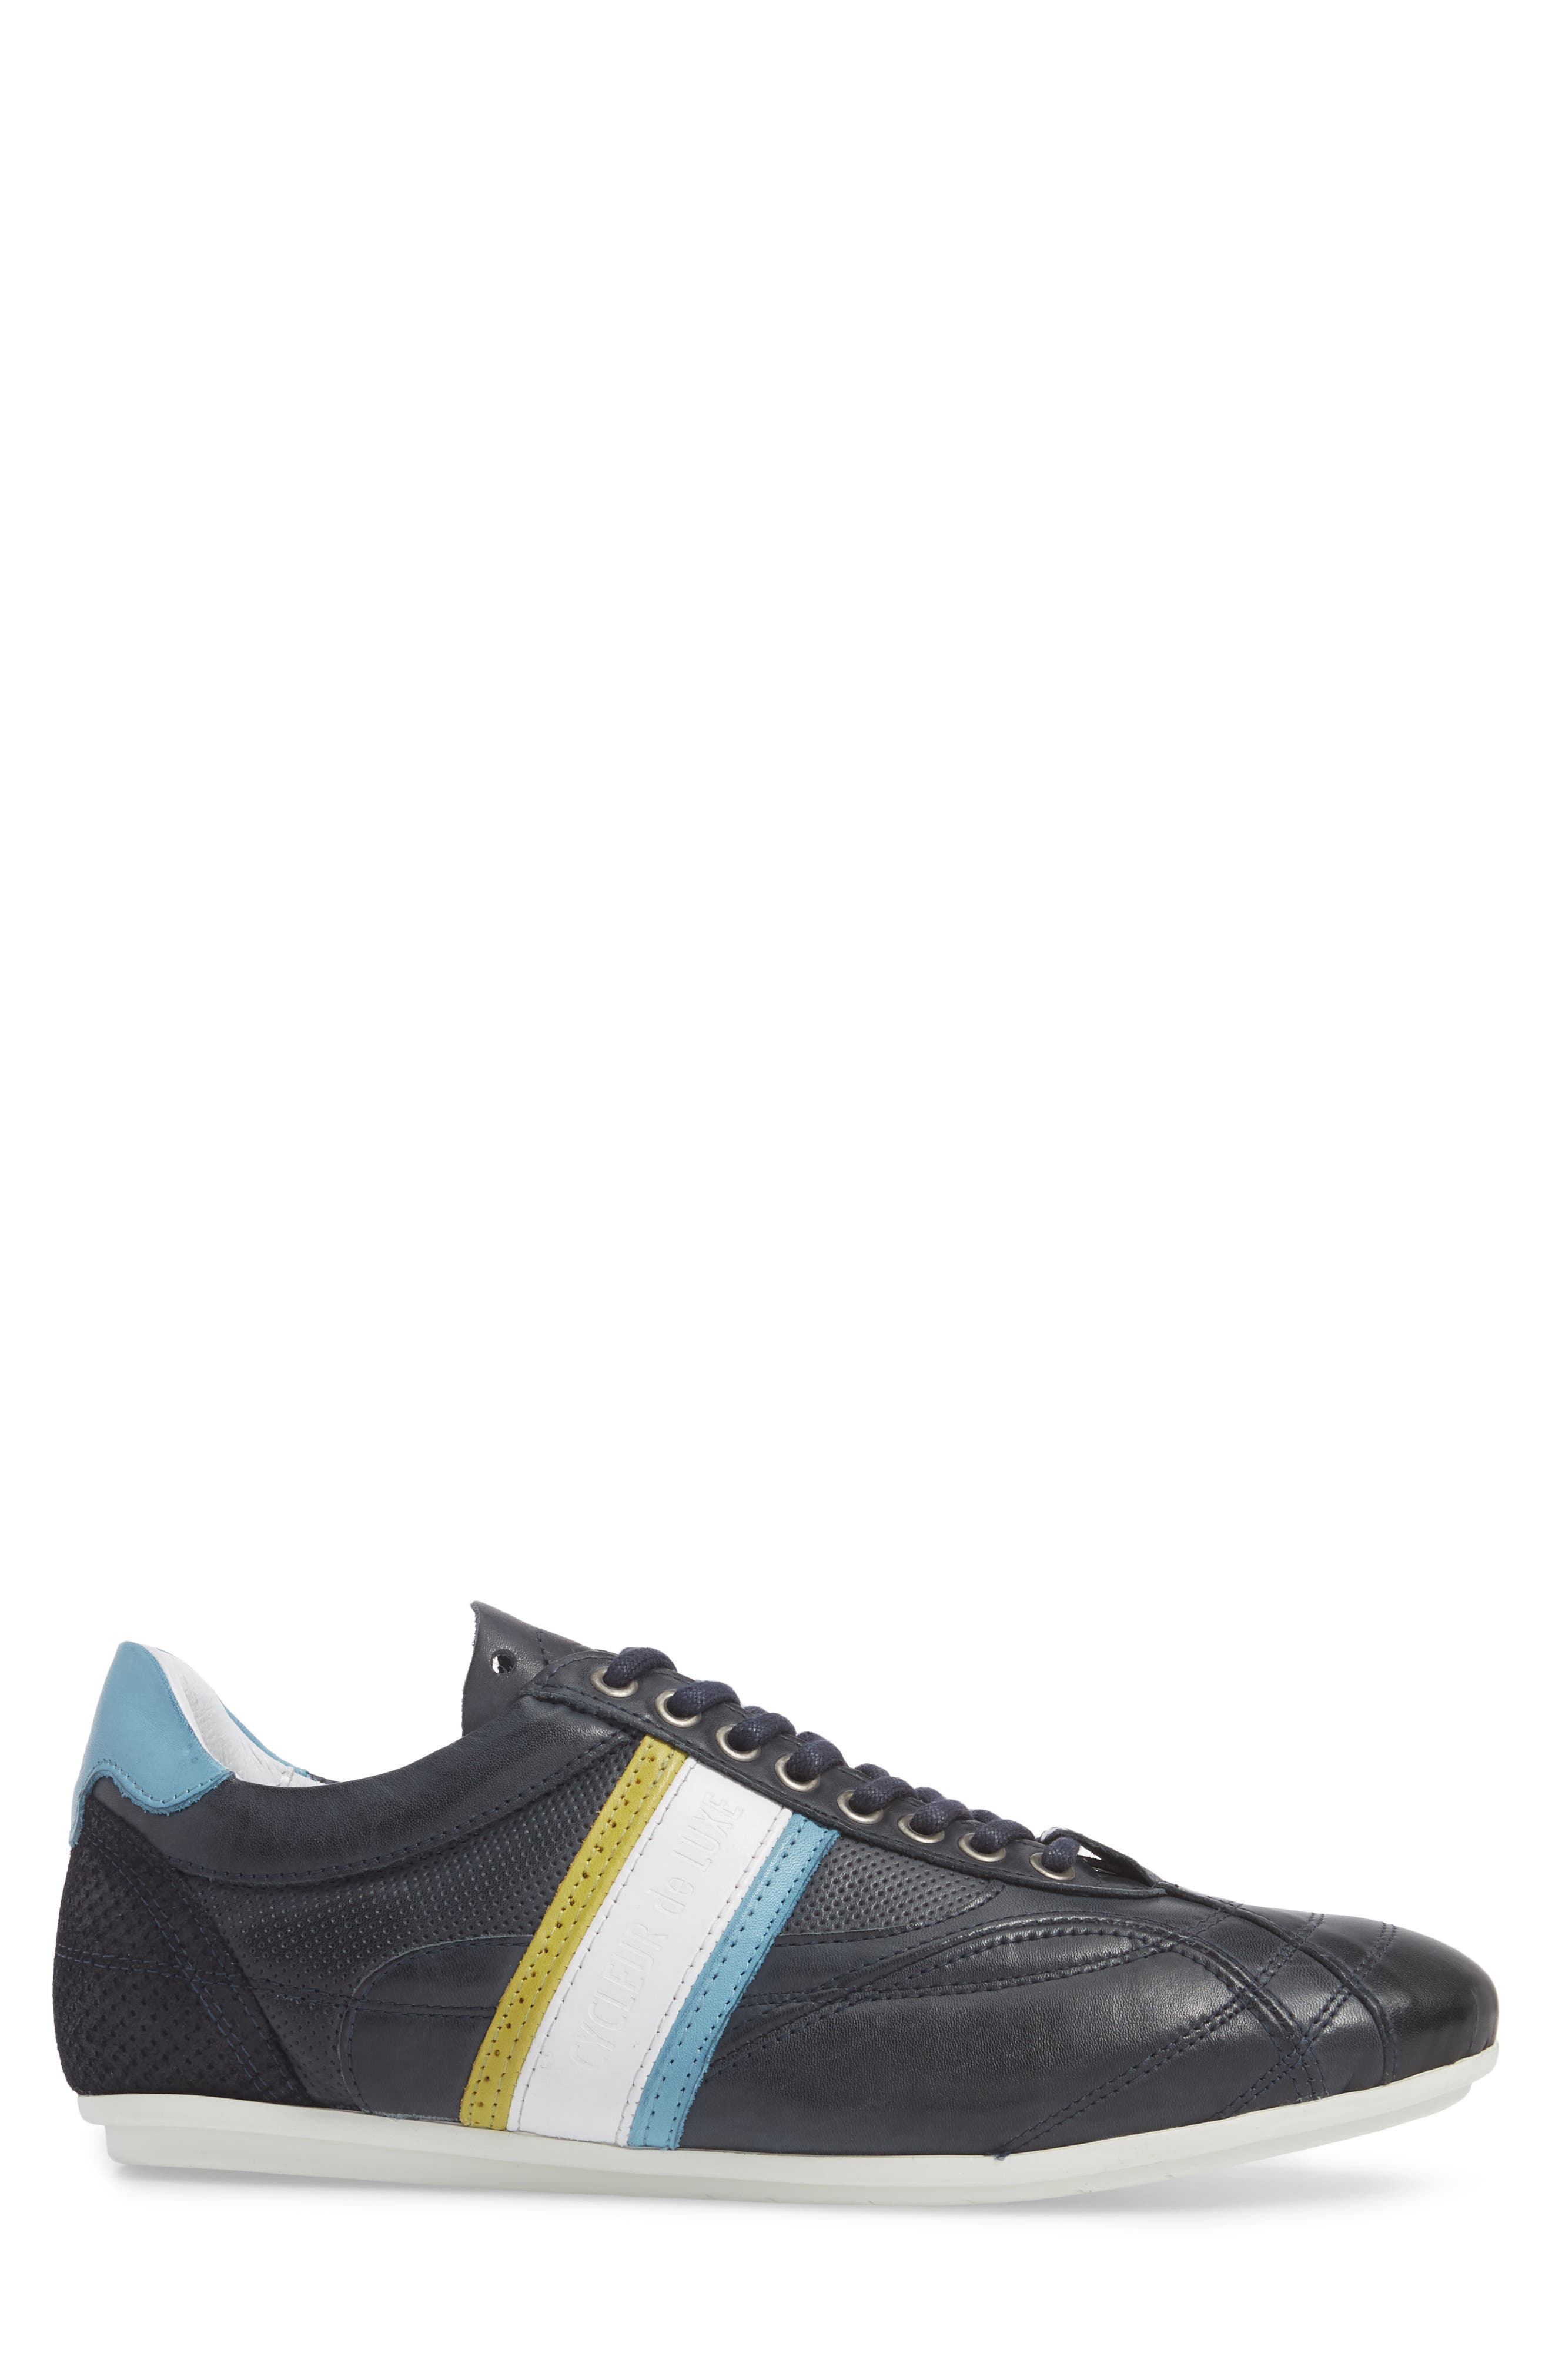 Crush City Low Top Sneaker,                             Alternate thumbnail 3, color,                             NAVY LEATHER